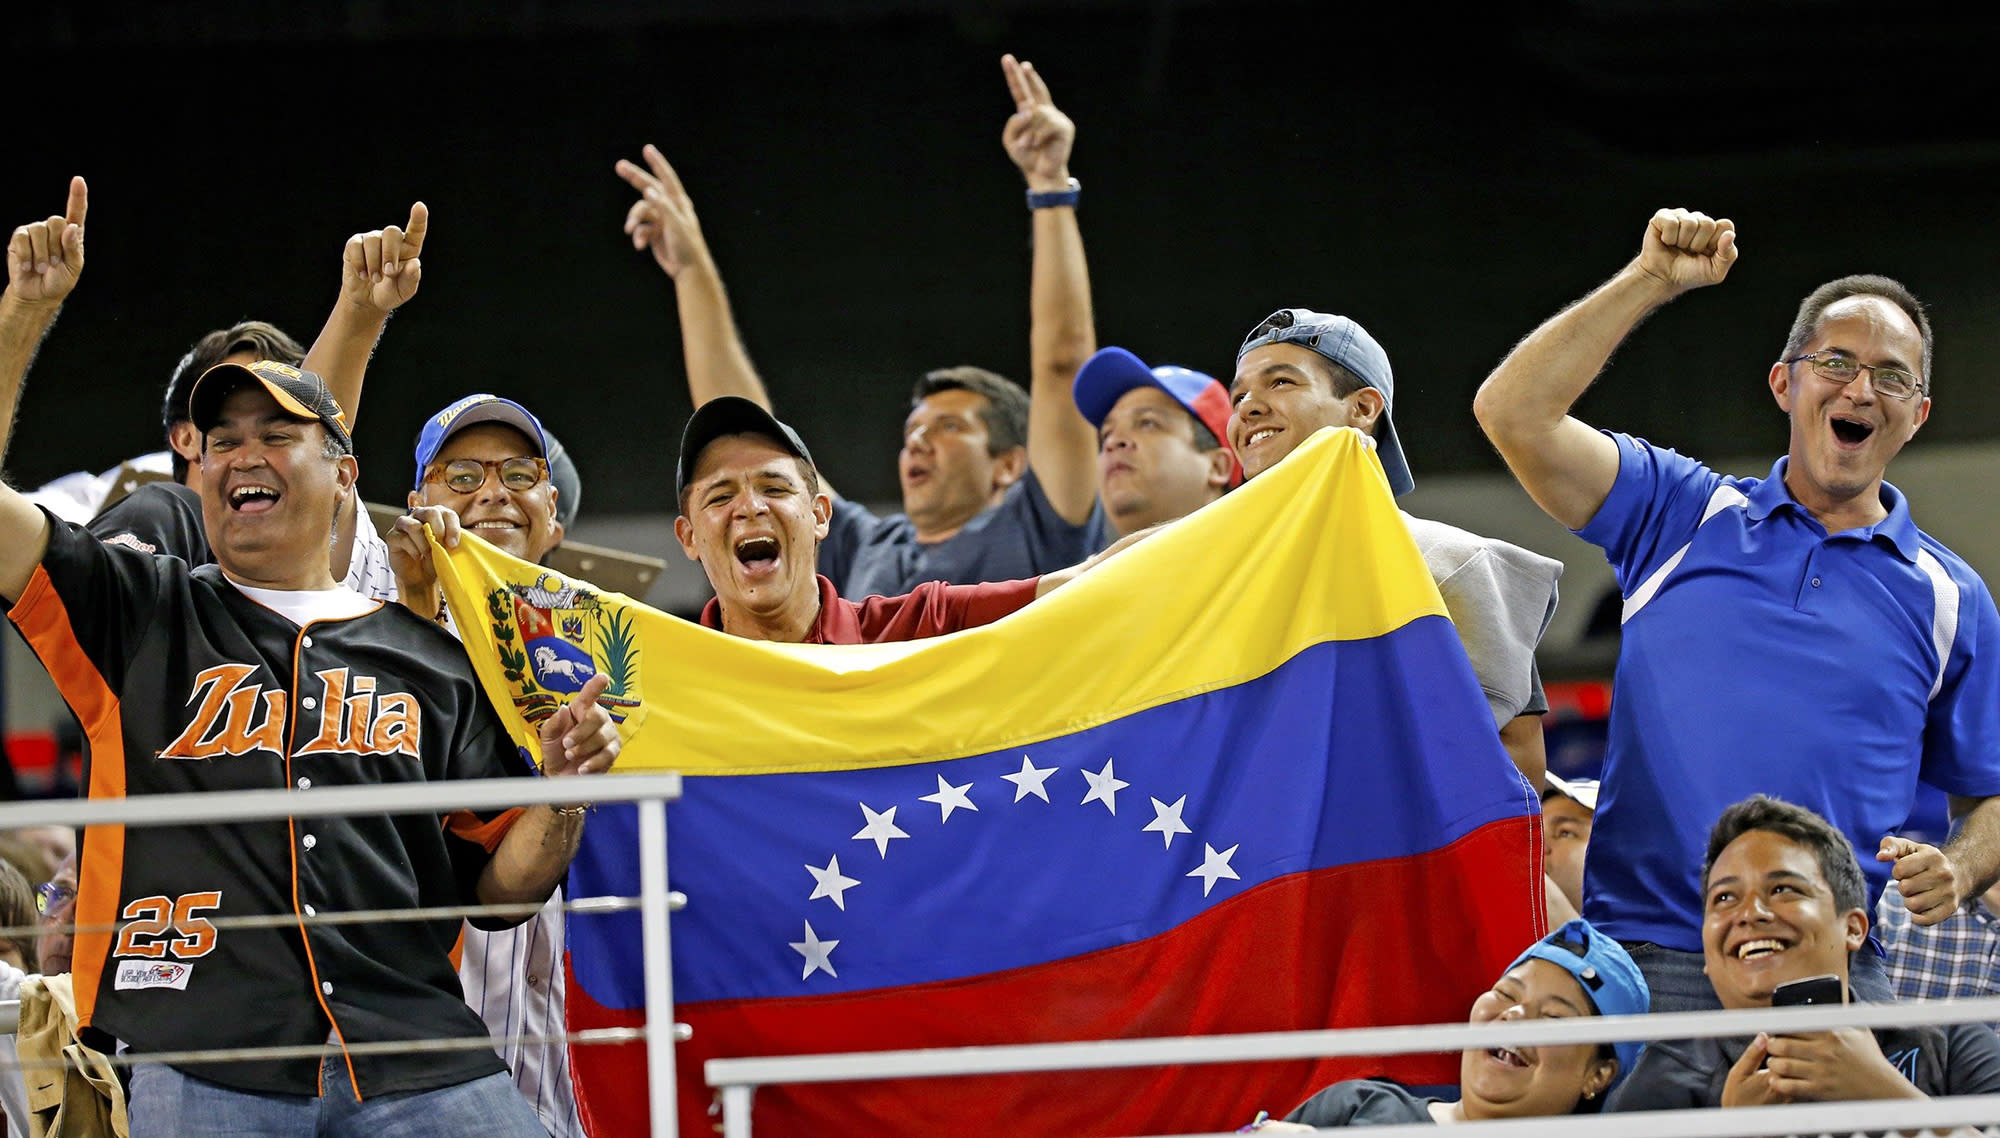 Report: MLB will ban players from Venezuelan Winter League after President Trump's embargo